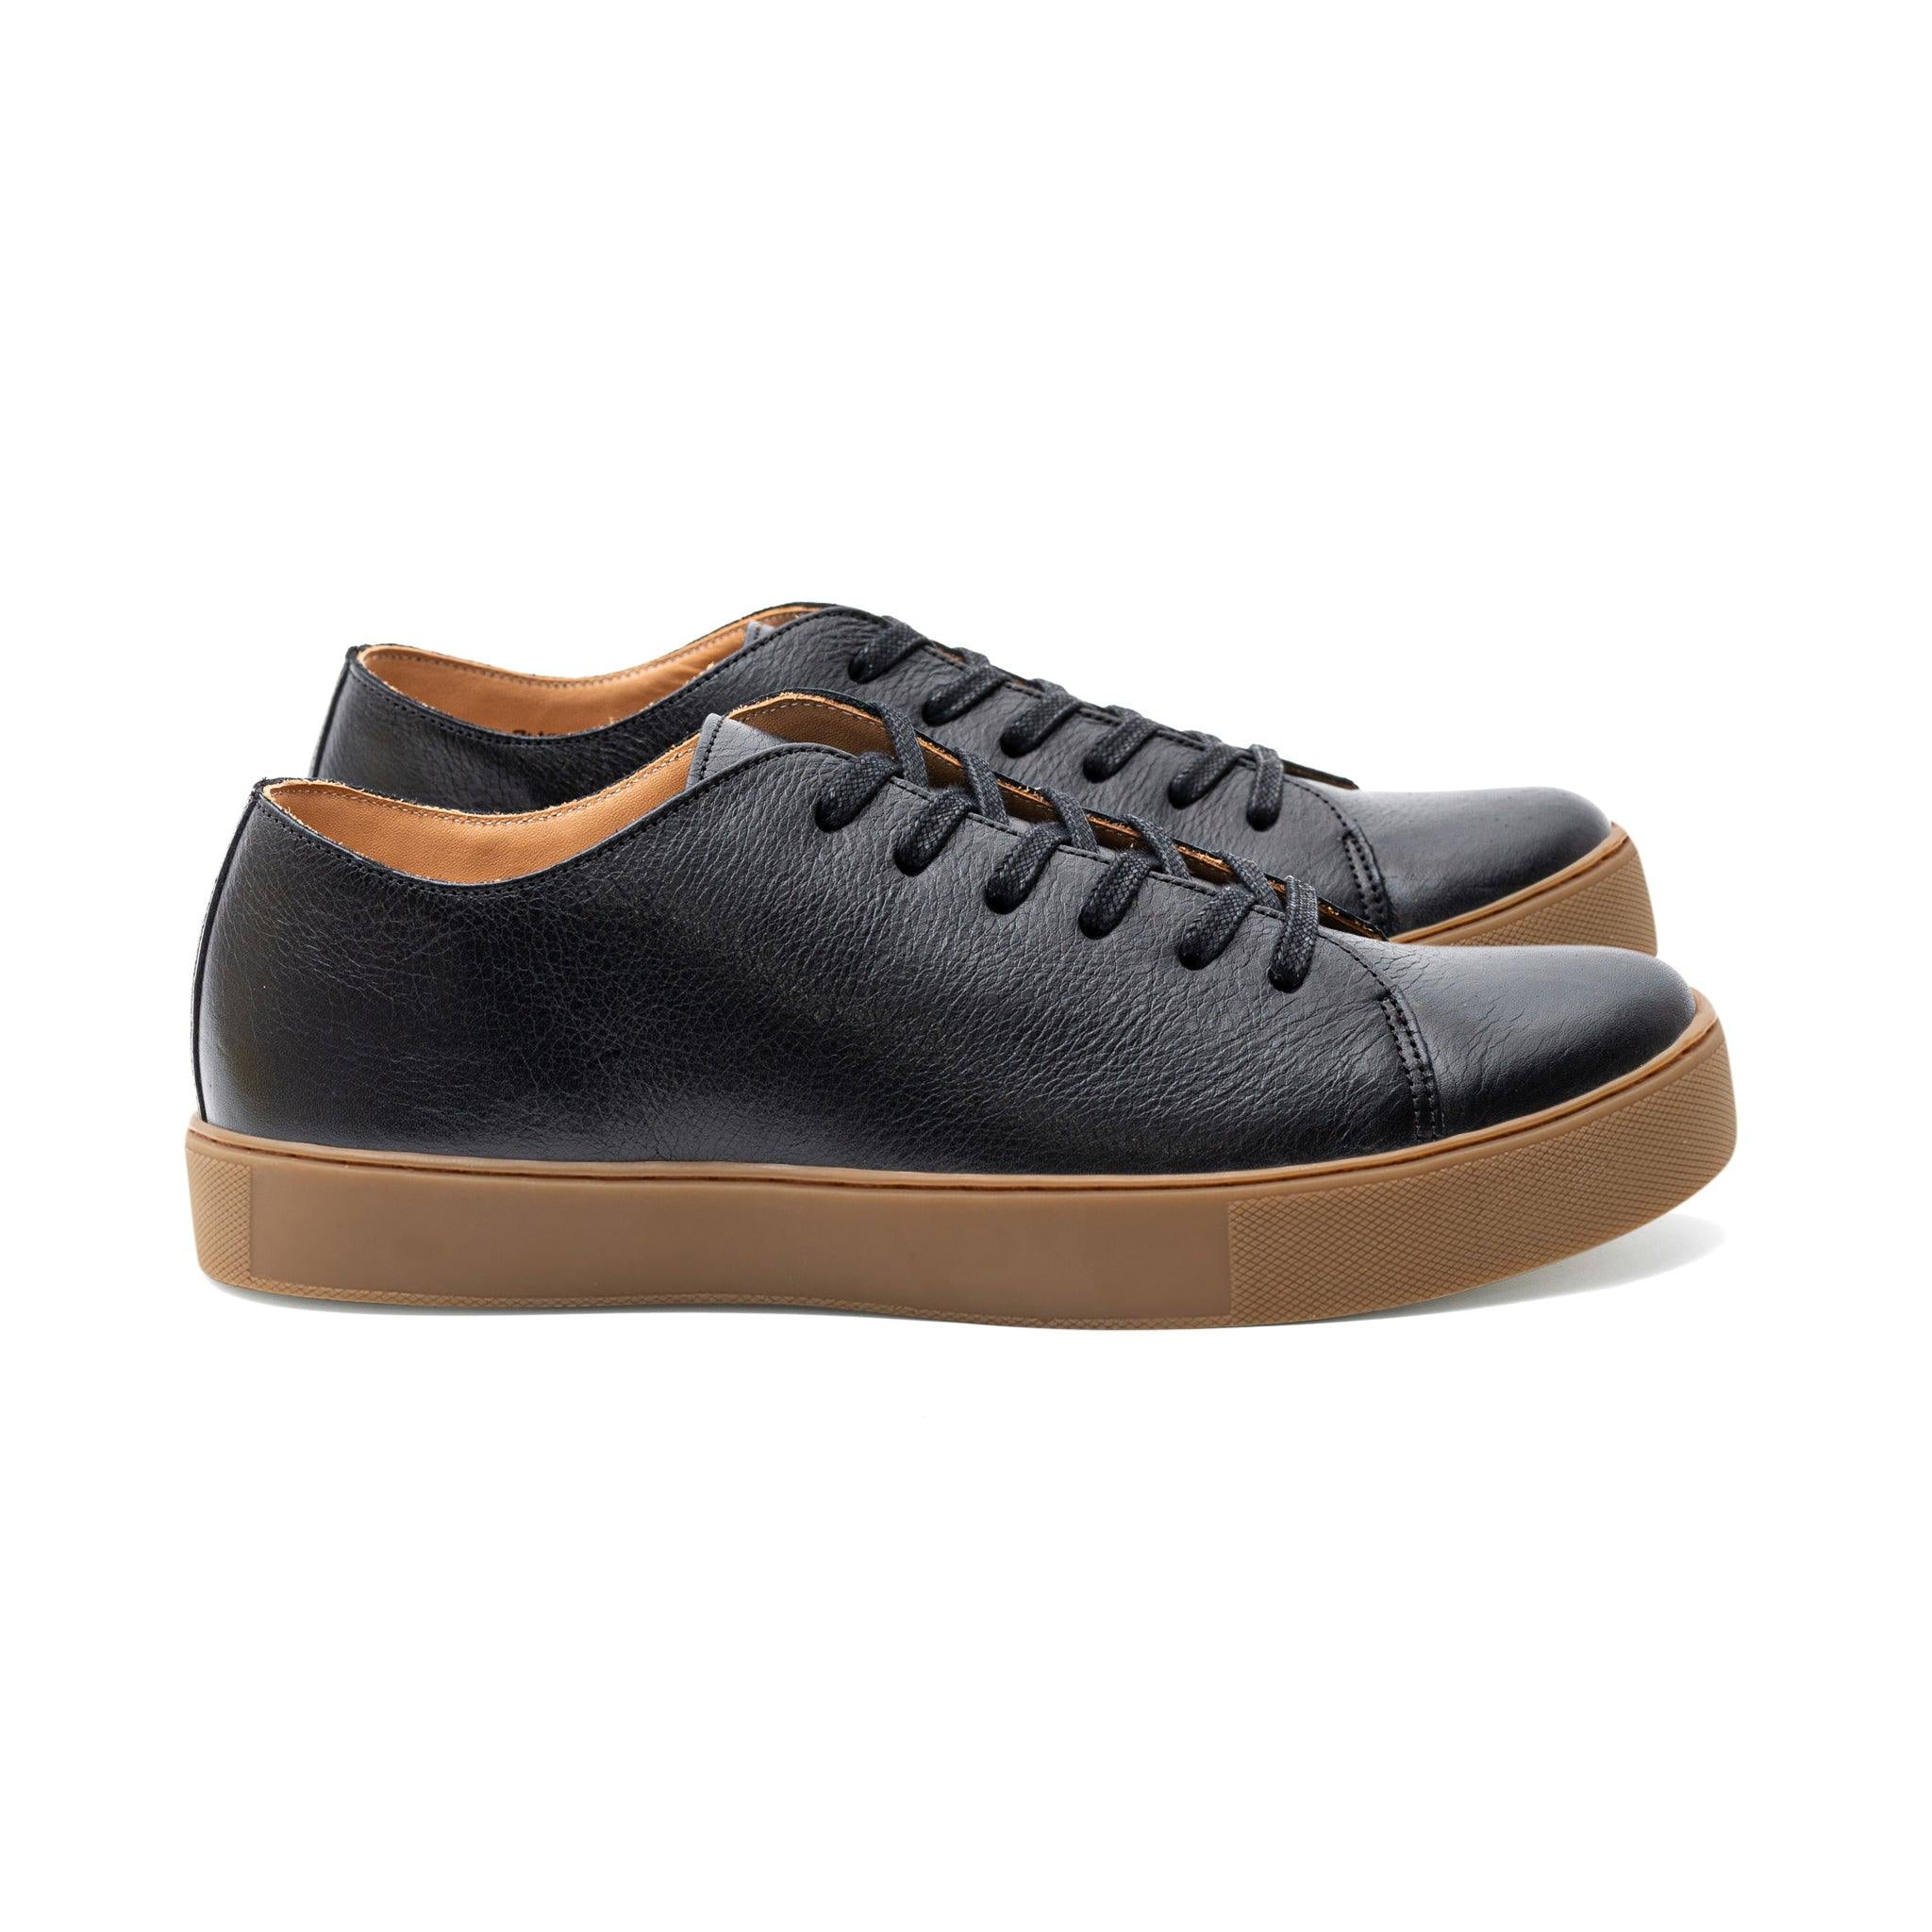 gum sole leather sneakers